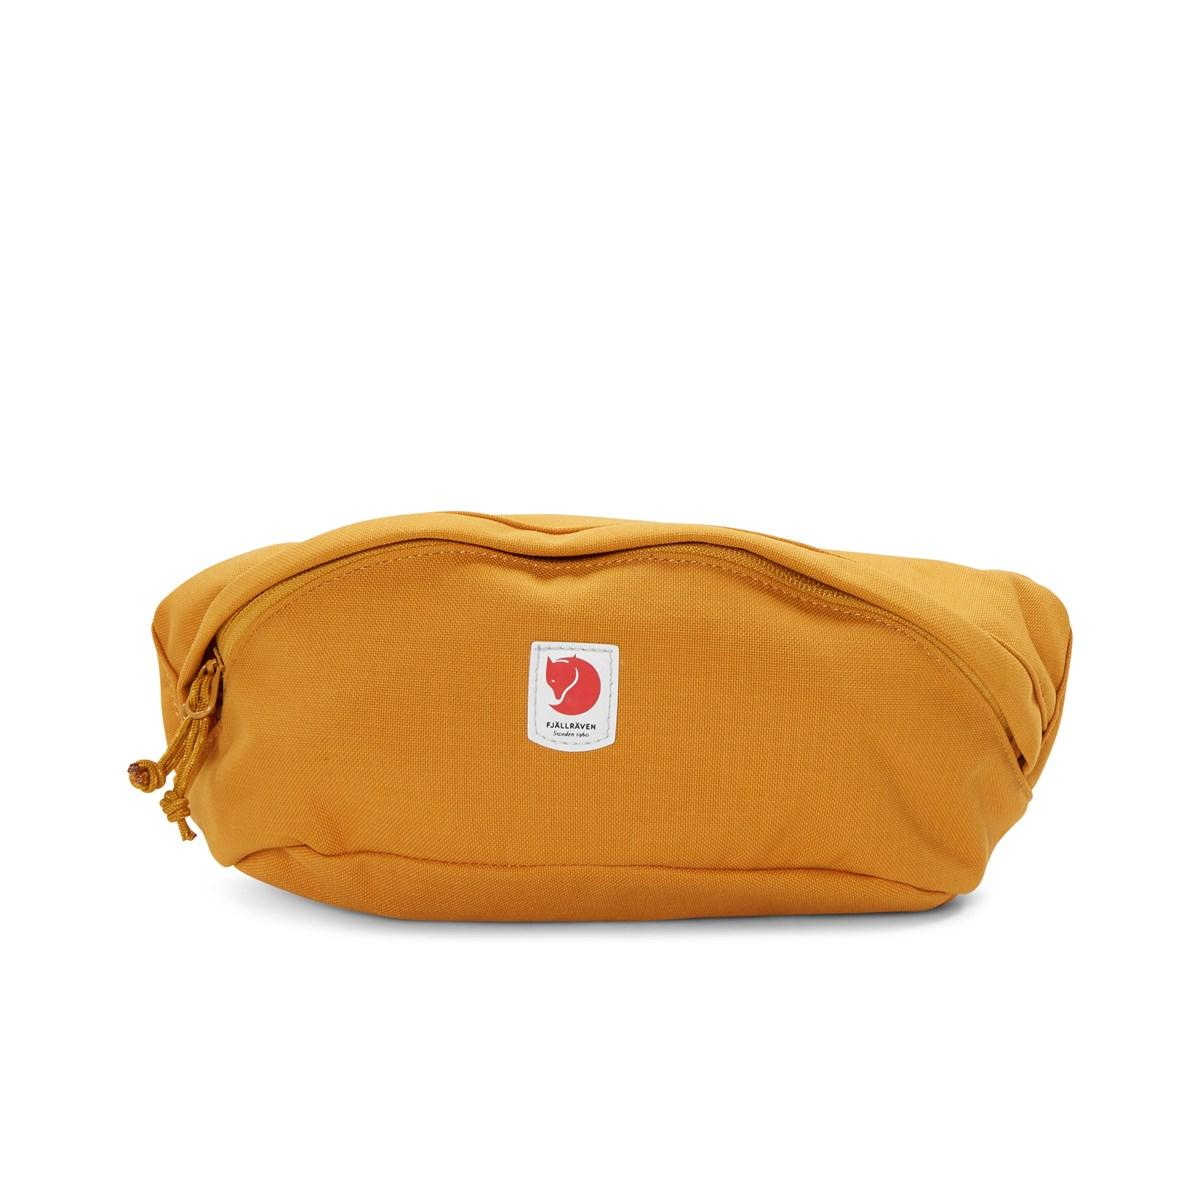 Ulvo Hip Pack in Gold